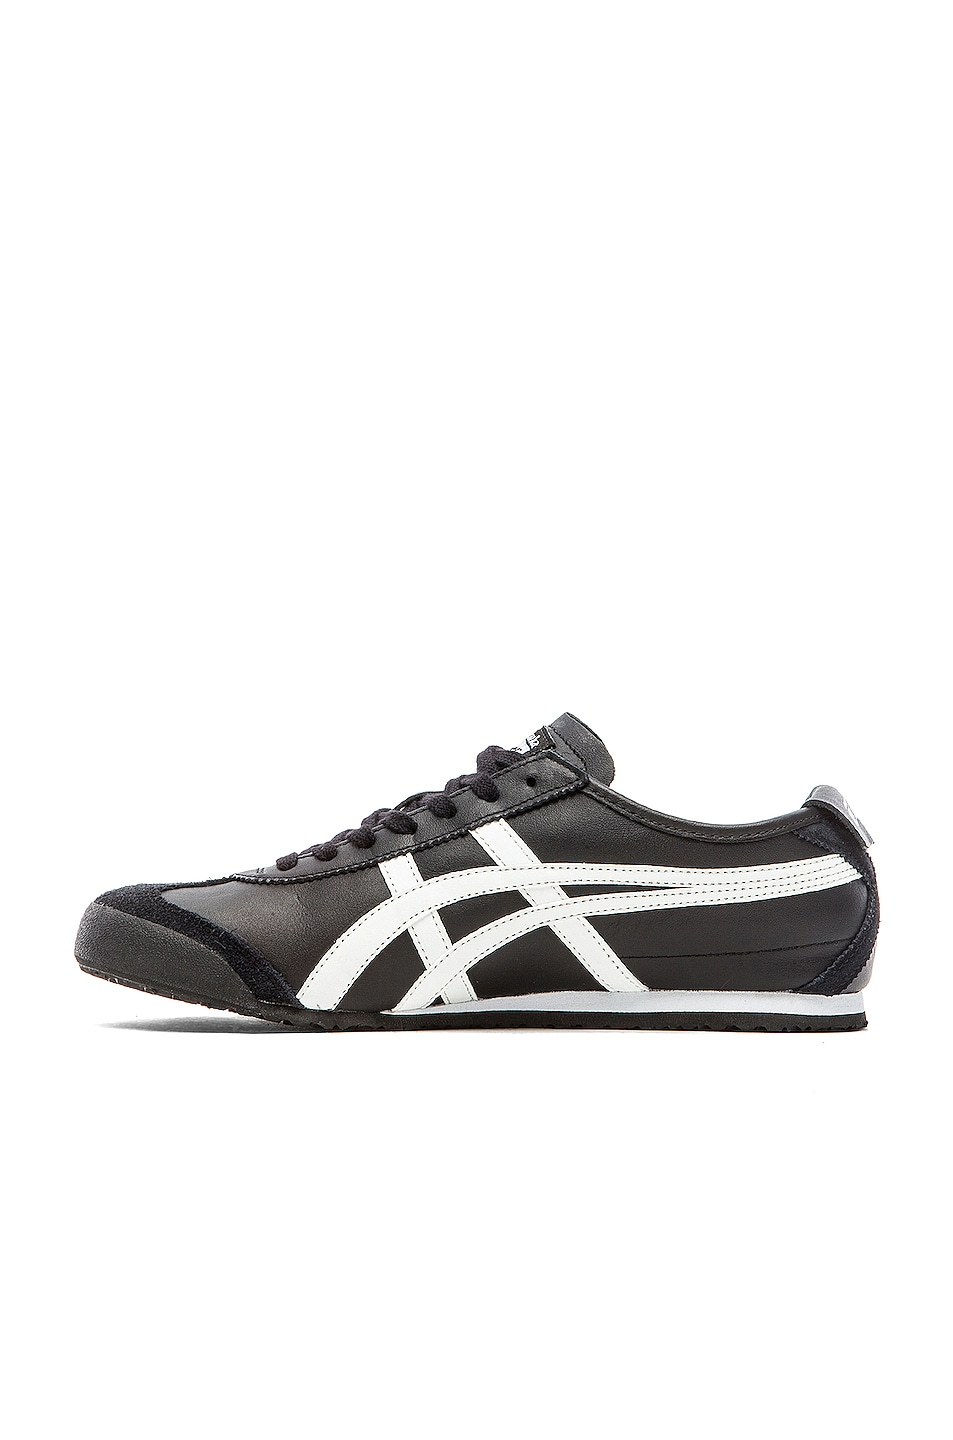 Image 5 of Onitsuka Tiger Mexico 66 in Black White